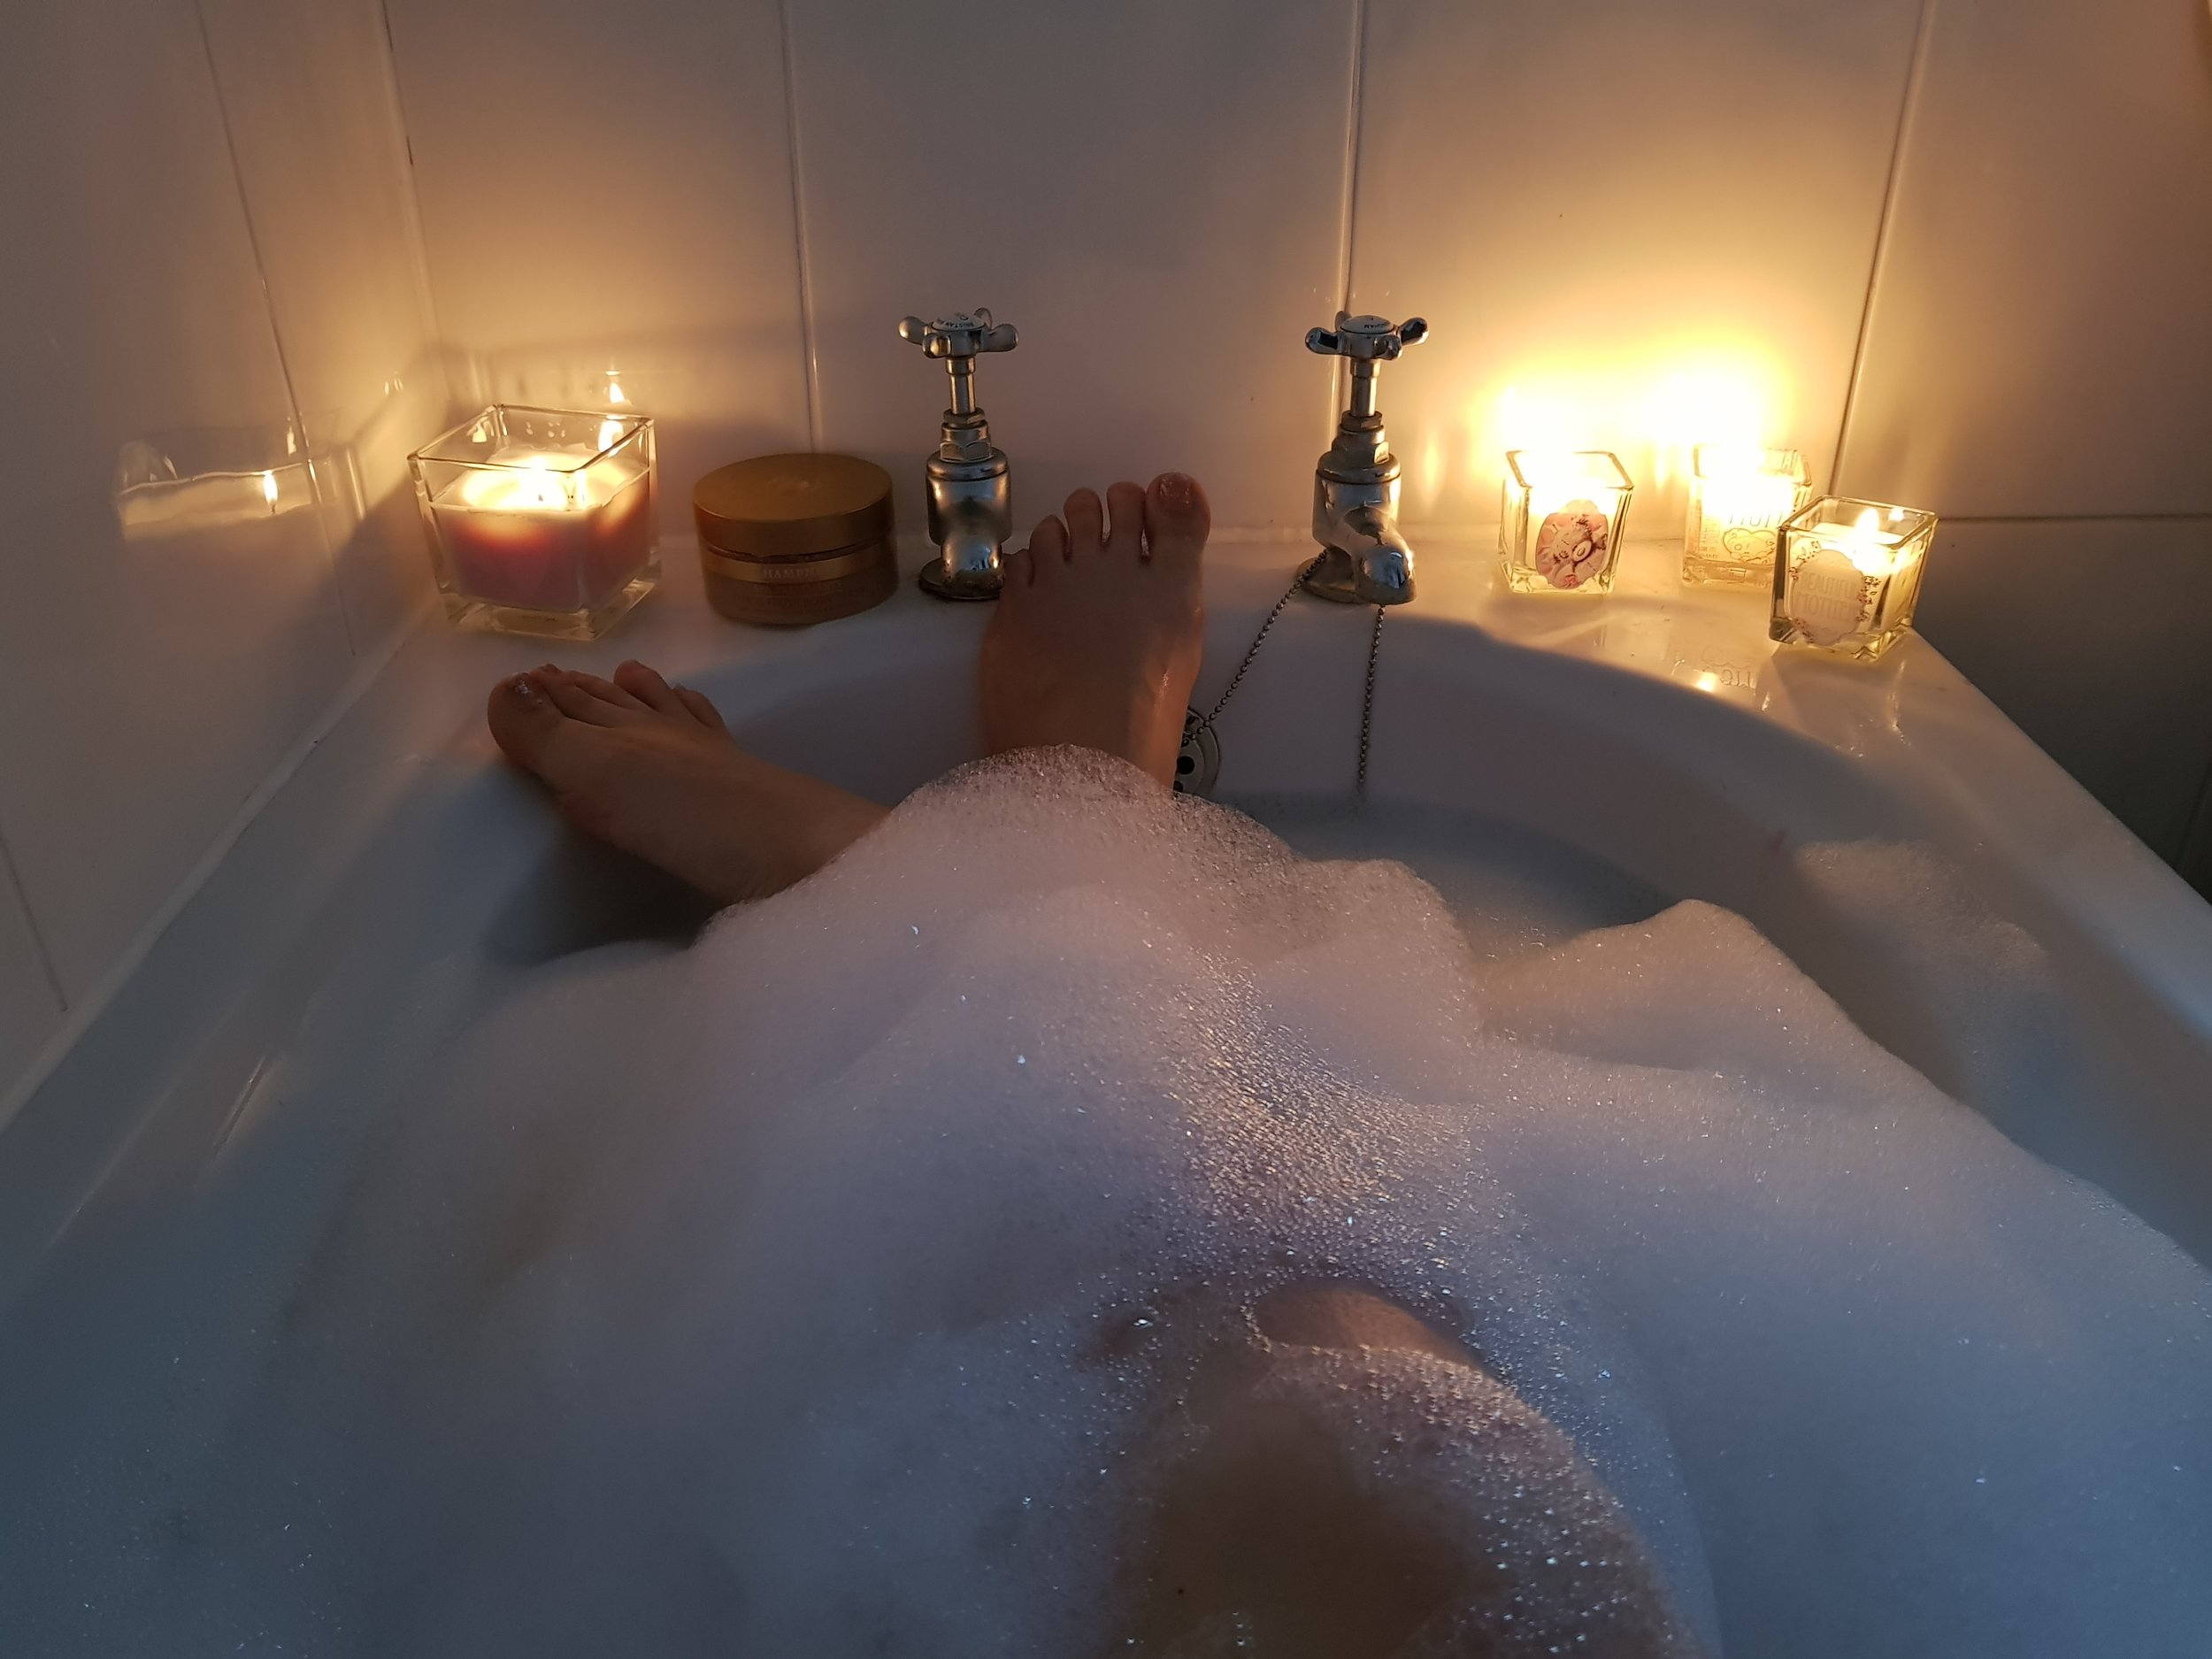 Have a bath, relax and unwind